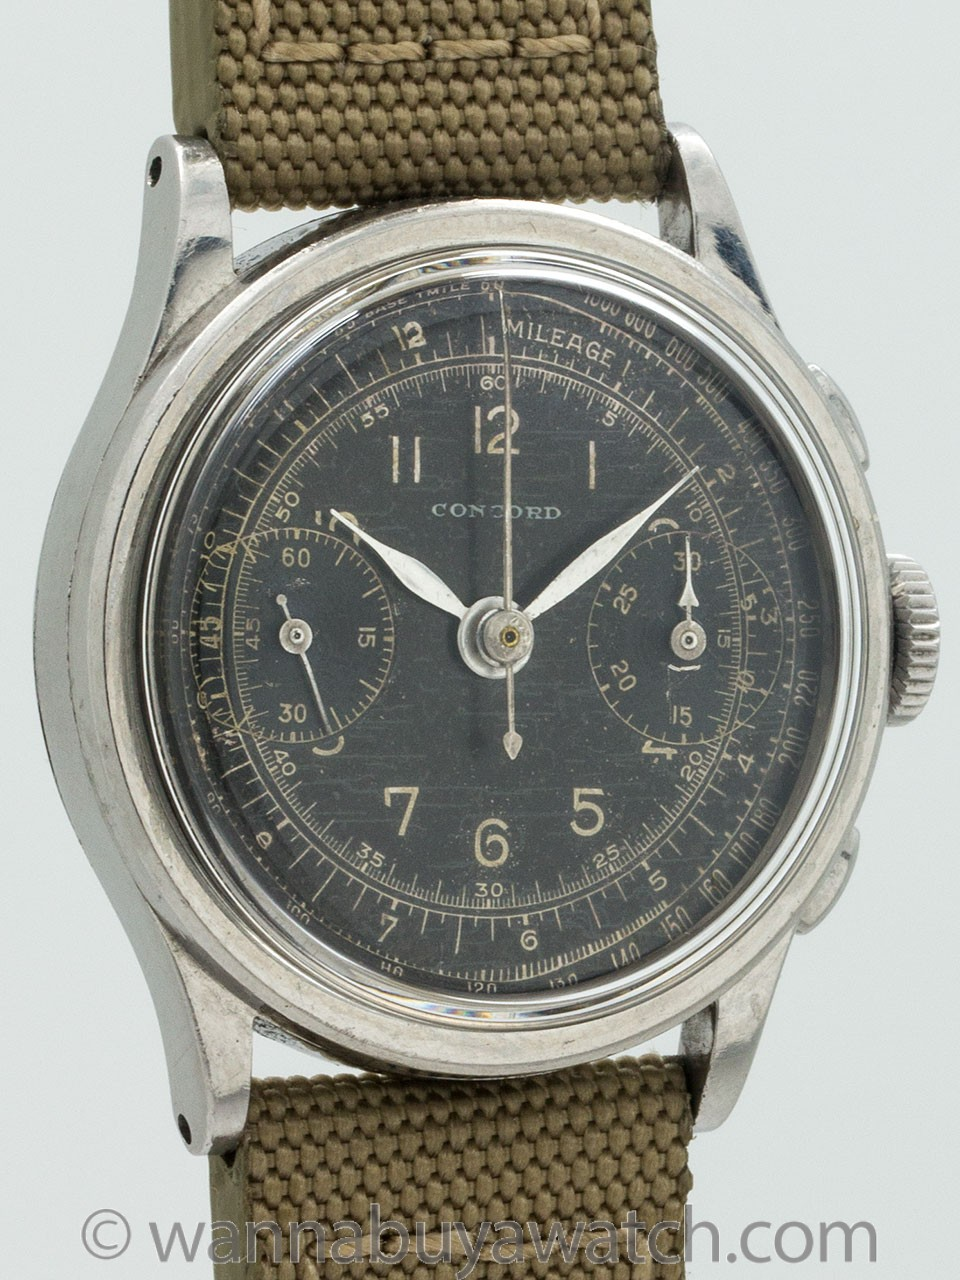 Concord Chronograph Stainless Steel circa 1940's